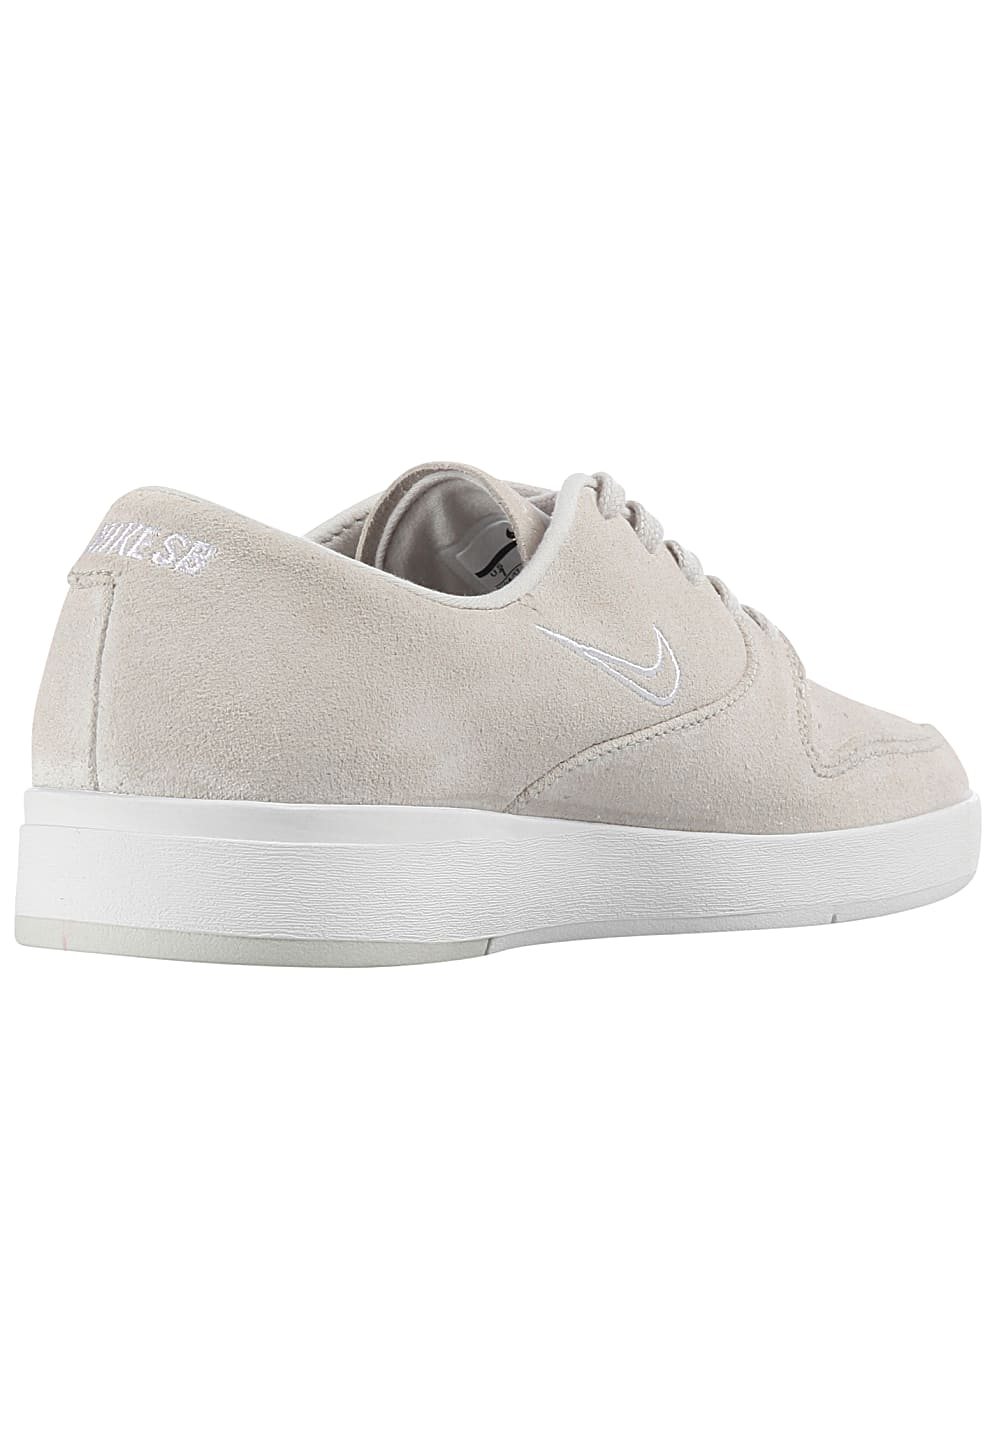 a1a708f4a992 NIKE SB Zoom P-Rod X - Sneakers for Men - Beige - Planet Sports